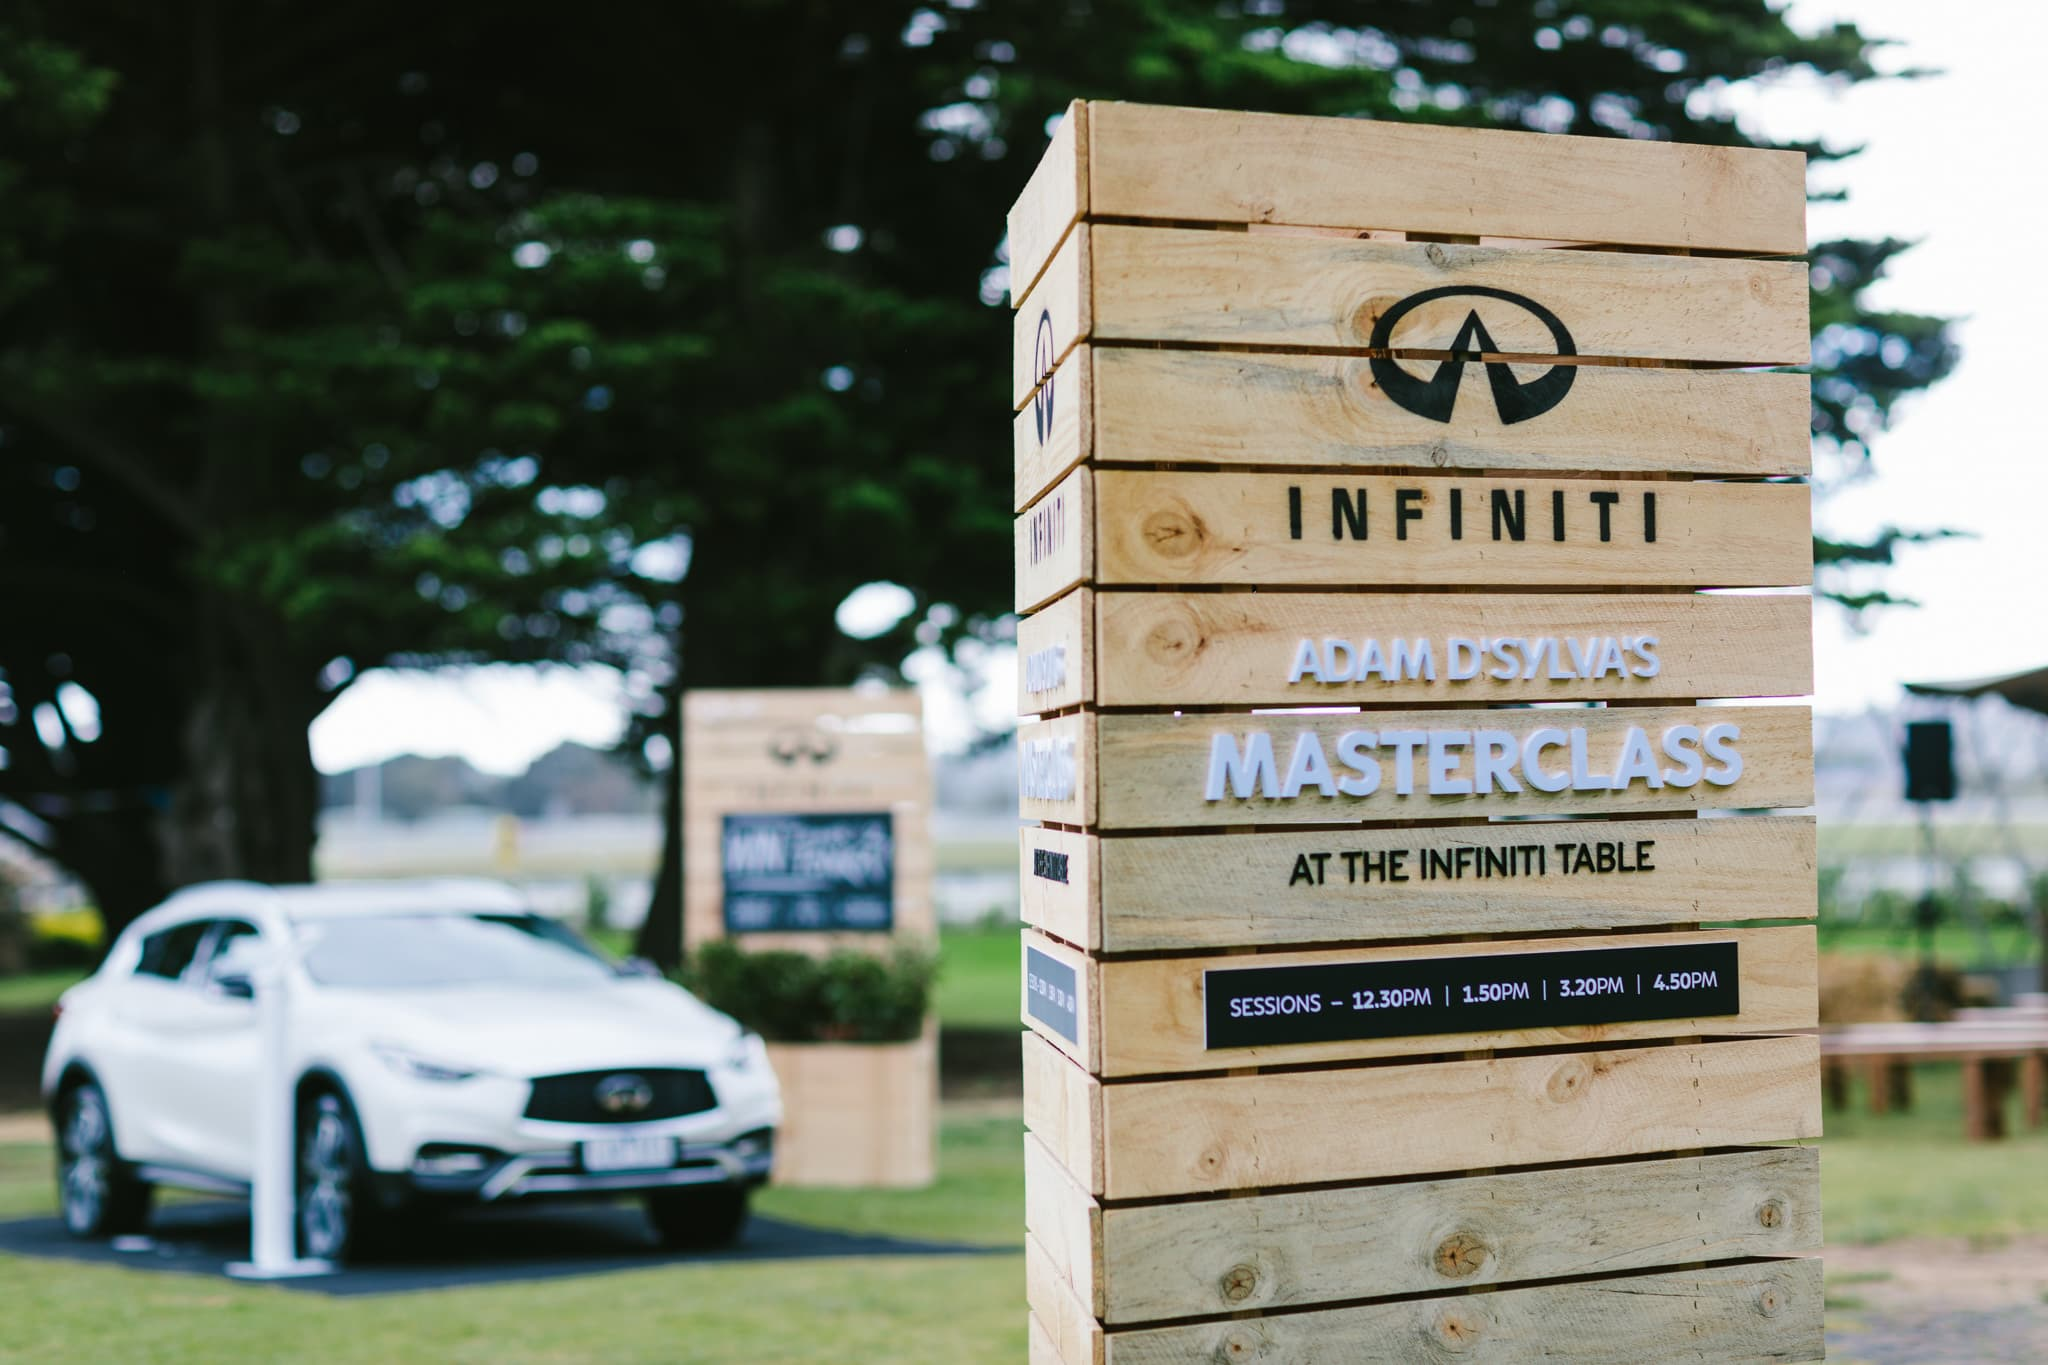 Infiniti Event Photos - Adam D'sylva Masterclass - Cooking and Food Photography in Melbourne